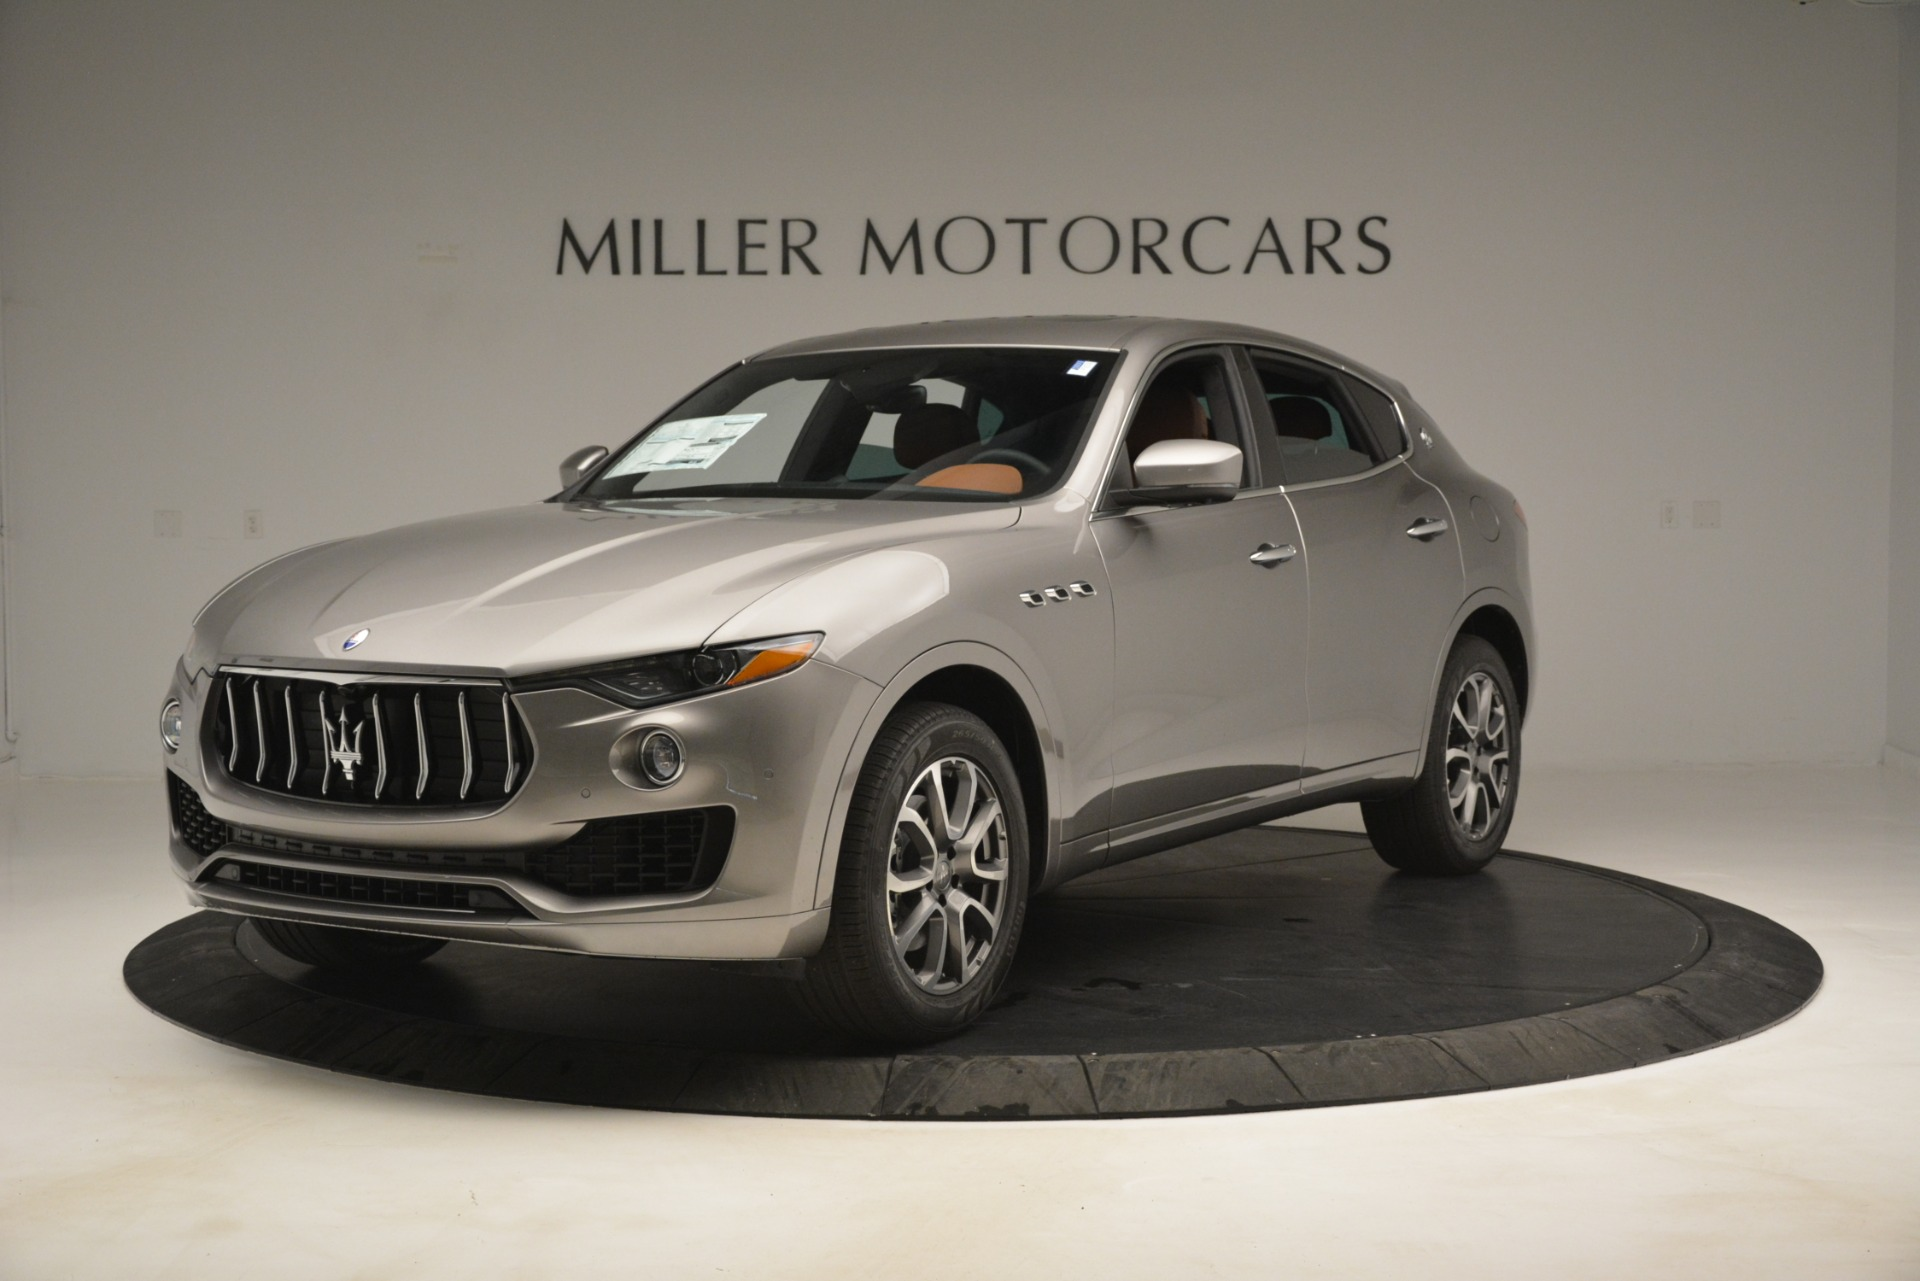 New 2019 Maserati Levante Q4 for sale $59,900 at Rolls-Royce Motor Cars Greenwich in Greenwich CT 06830 1